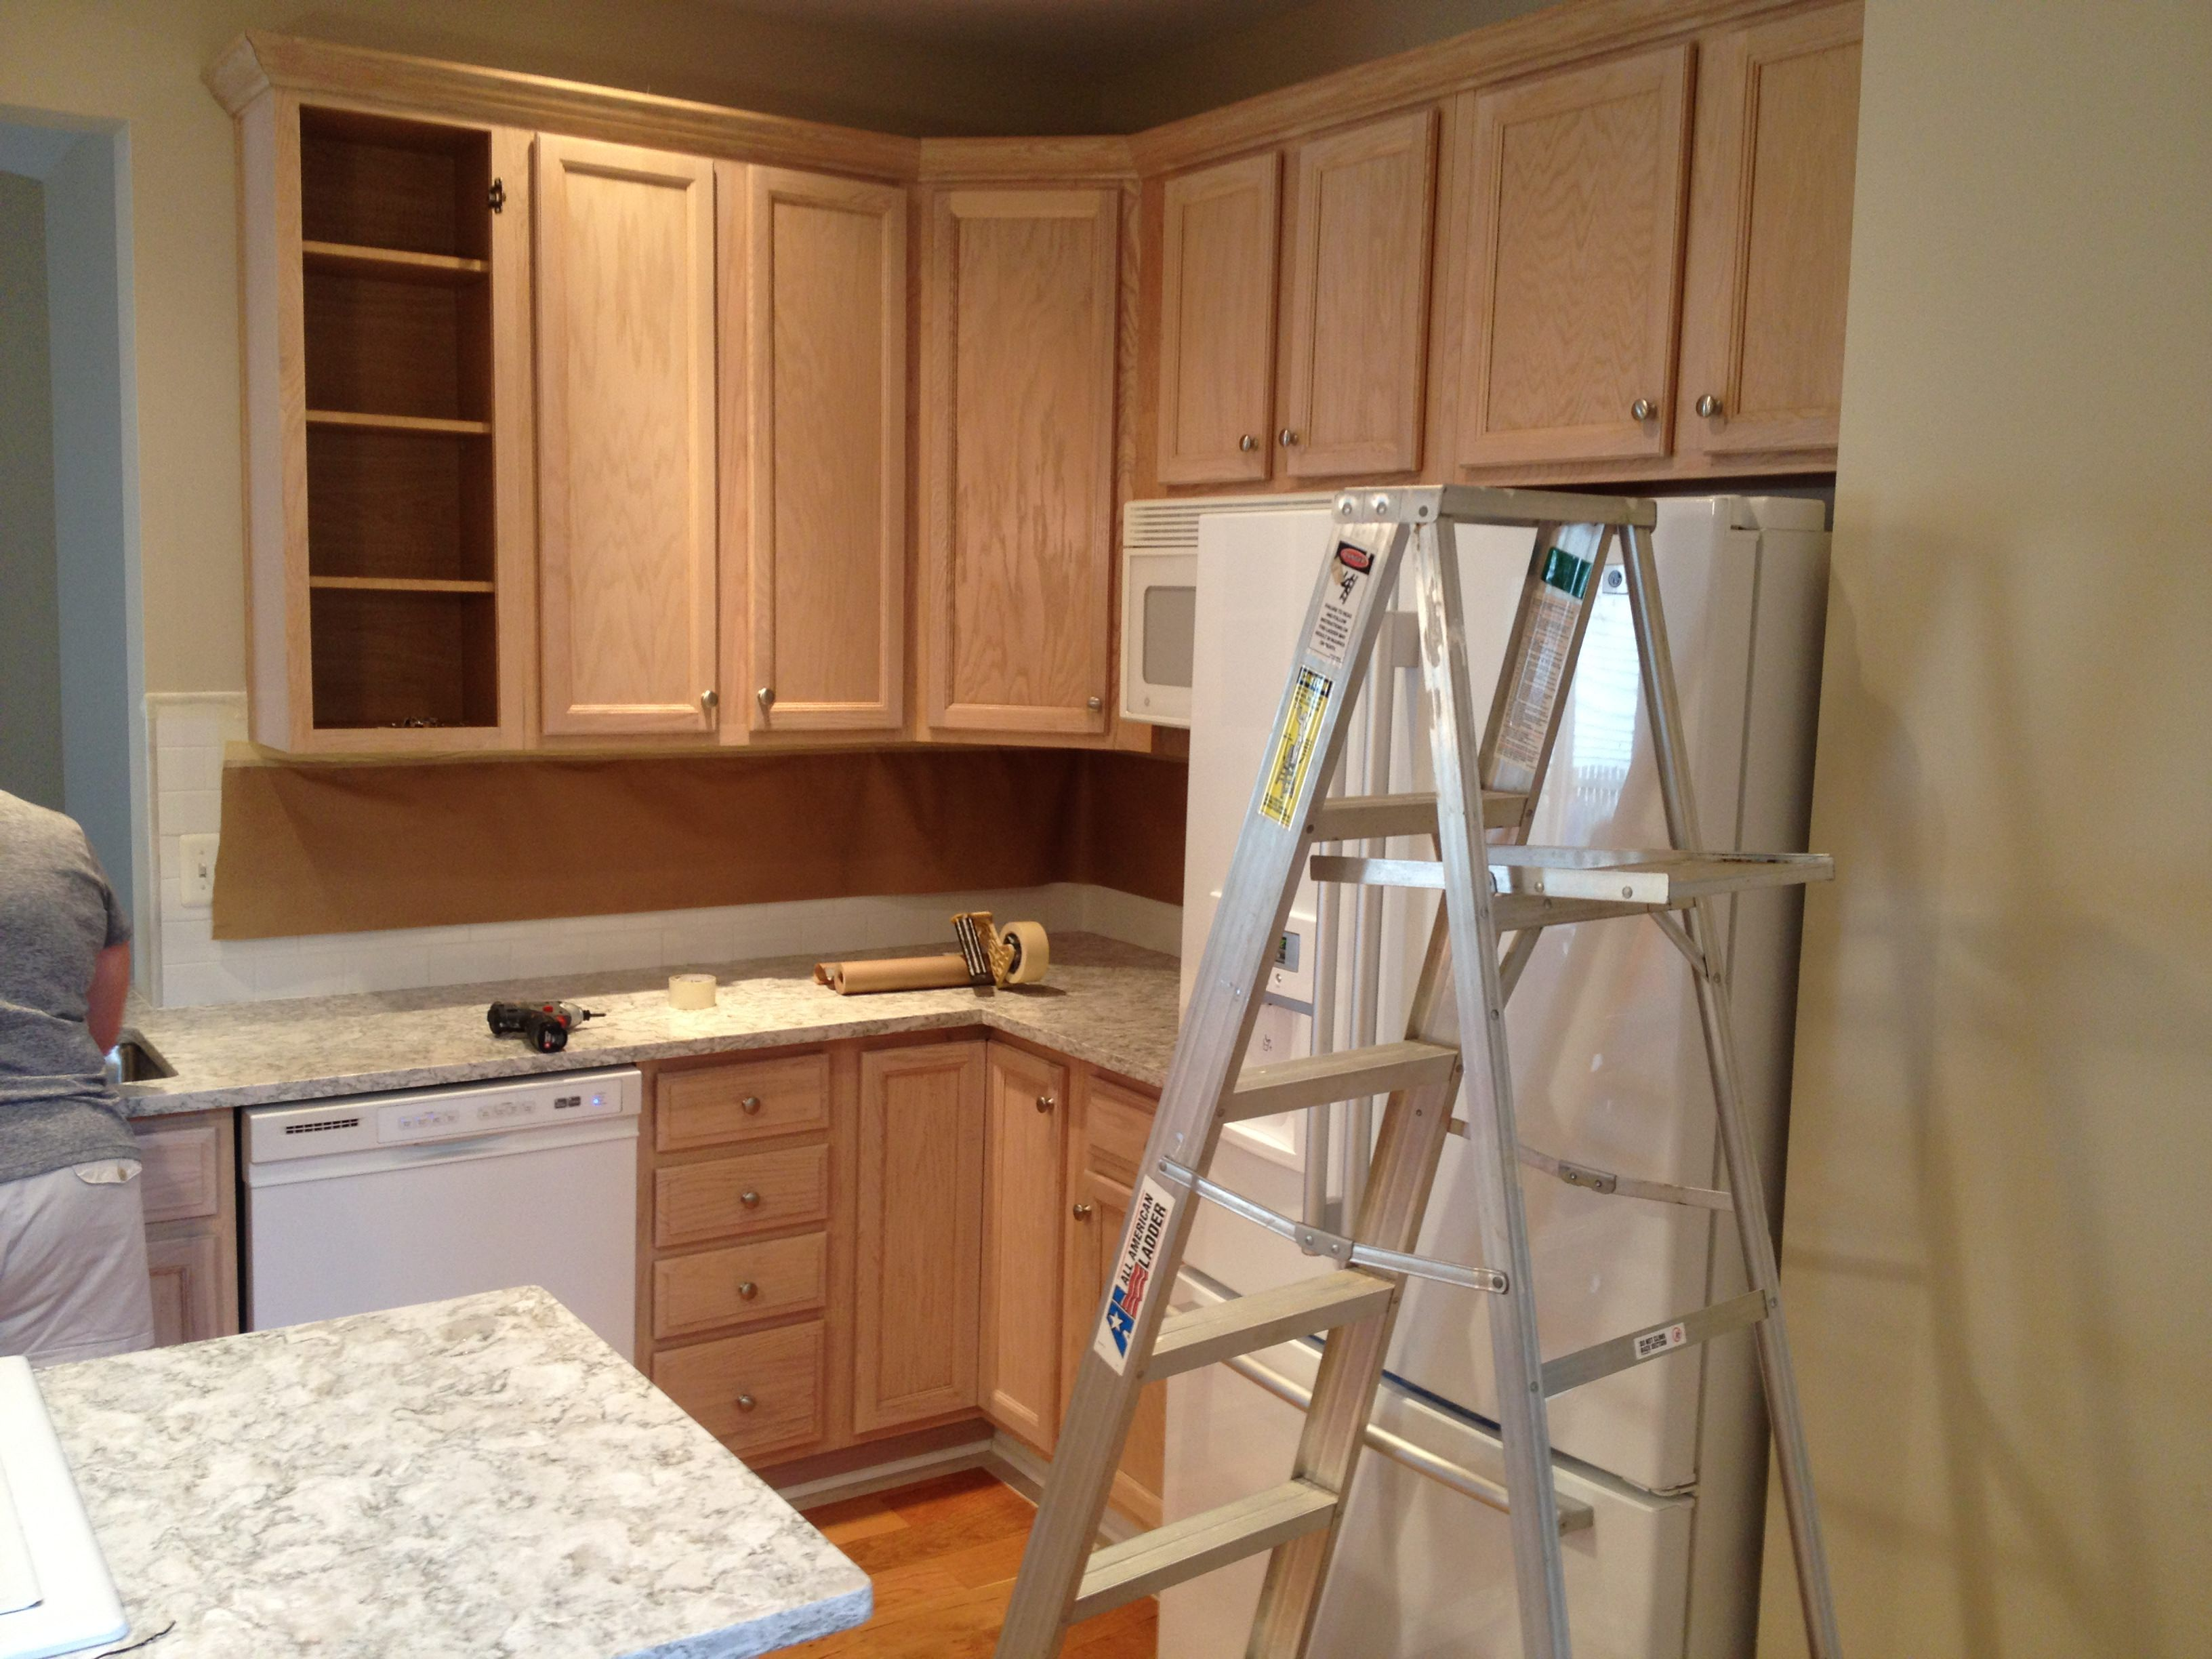 Image Result For Golden Oak Cabinets Bleaching Farmhouse Sink Kitchen Tall Kitchen Cabinets Kitchen Base Cabinets